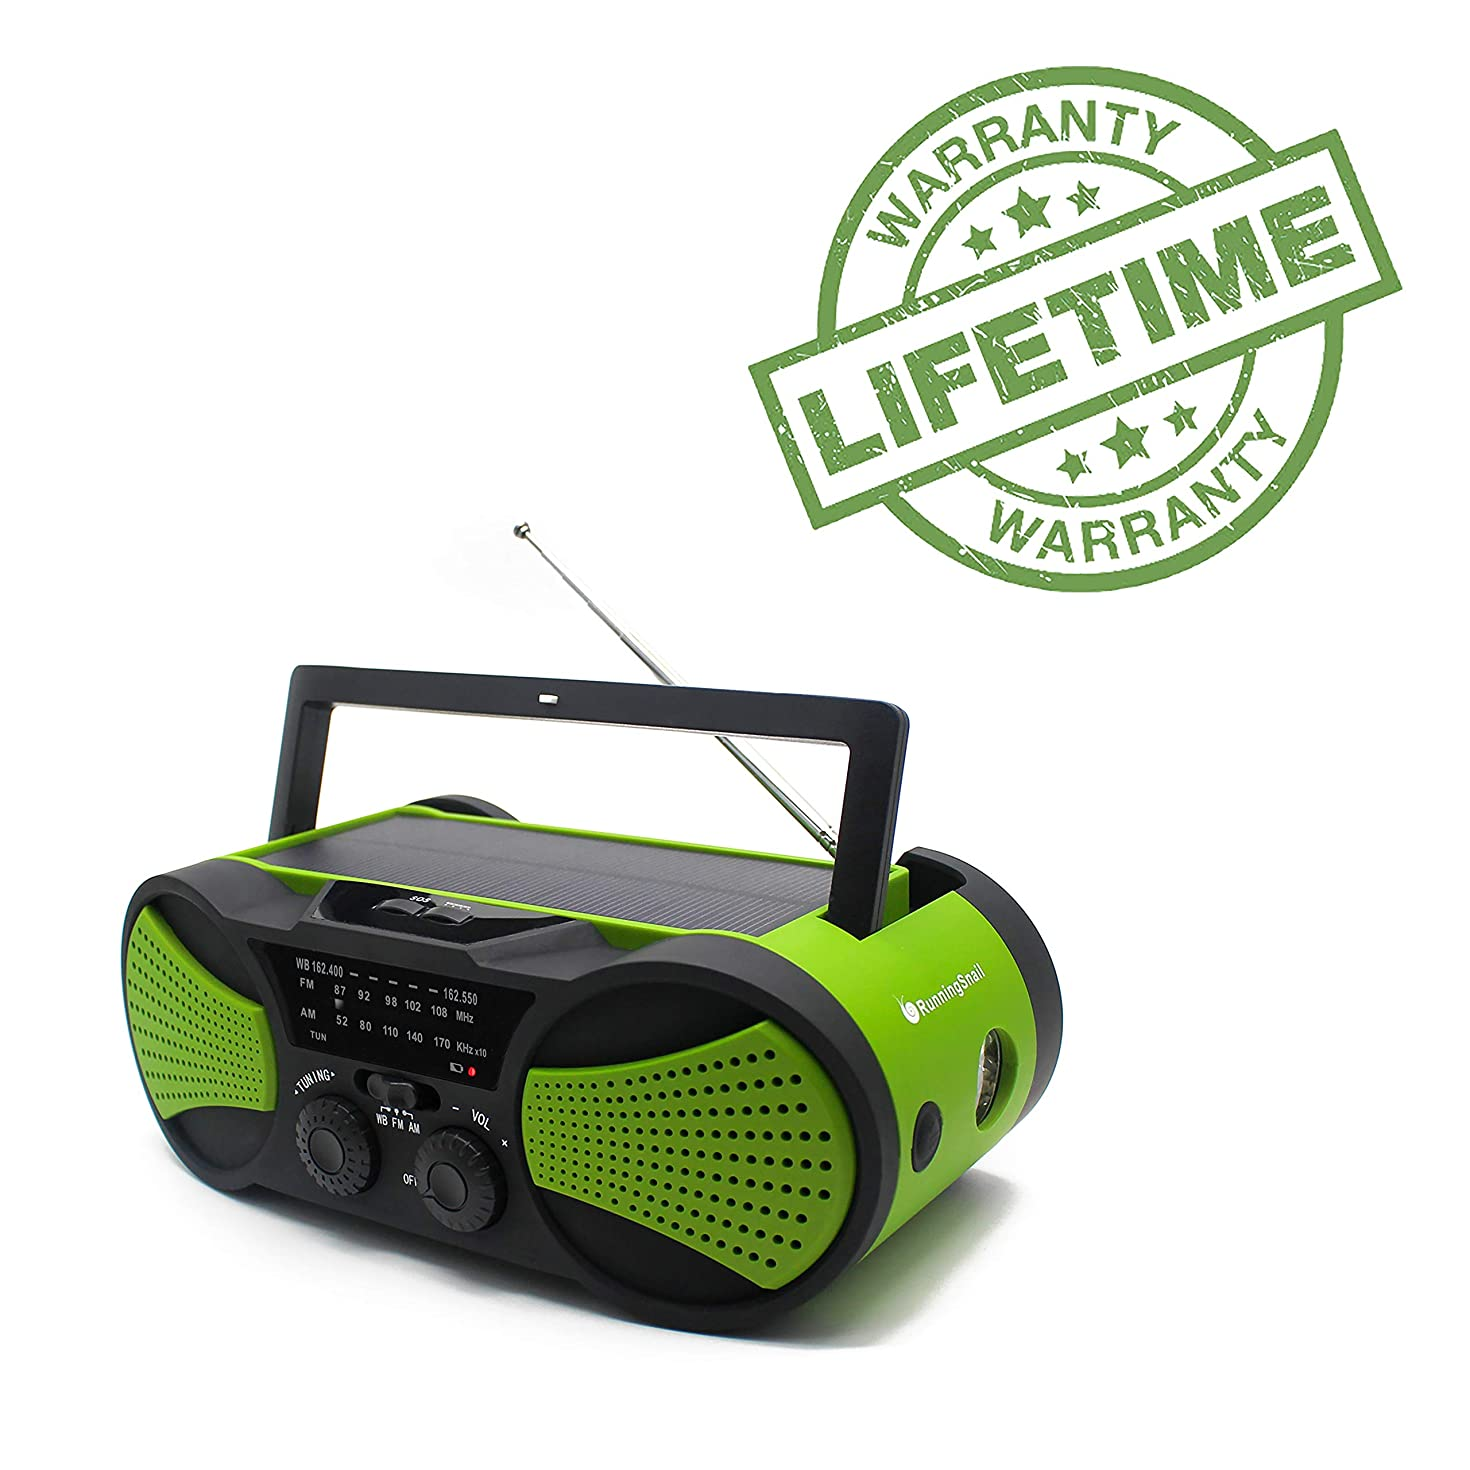 Emergency Crank NOAA Weather Radio, Audio Speaker, RunningSnail AM/FM 4-Way Powered Radio with 4000mAh Battery, LED Flashlight, Reading Lamp, SOS Alarm and Cellphone Charger (Green)